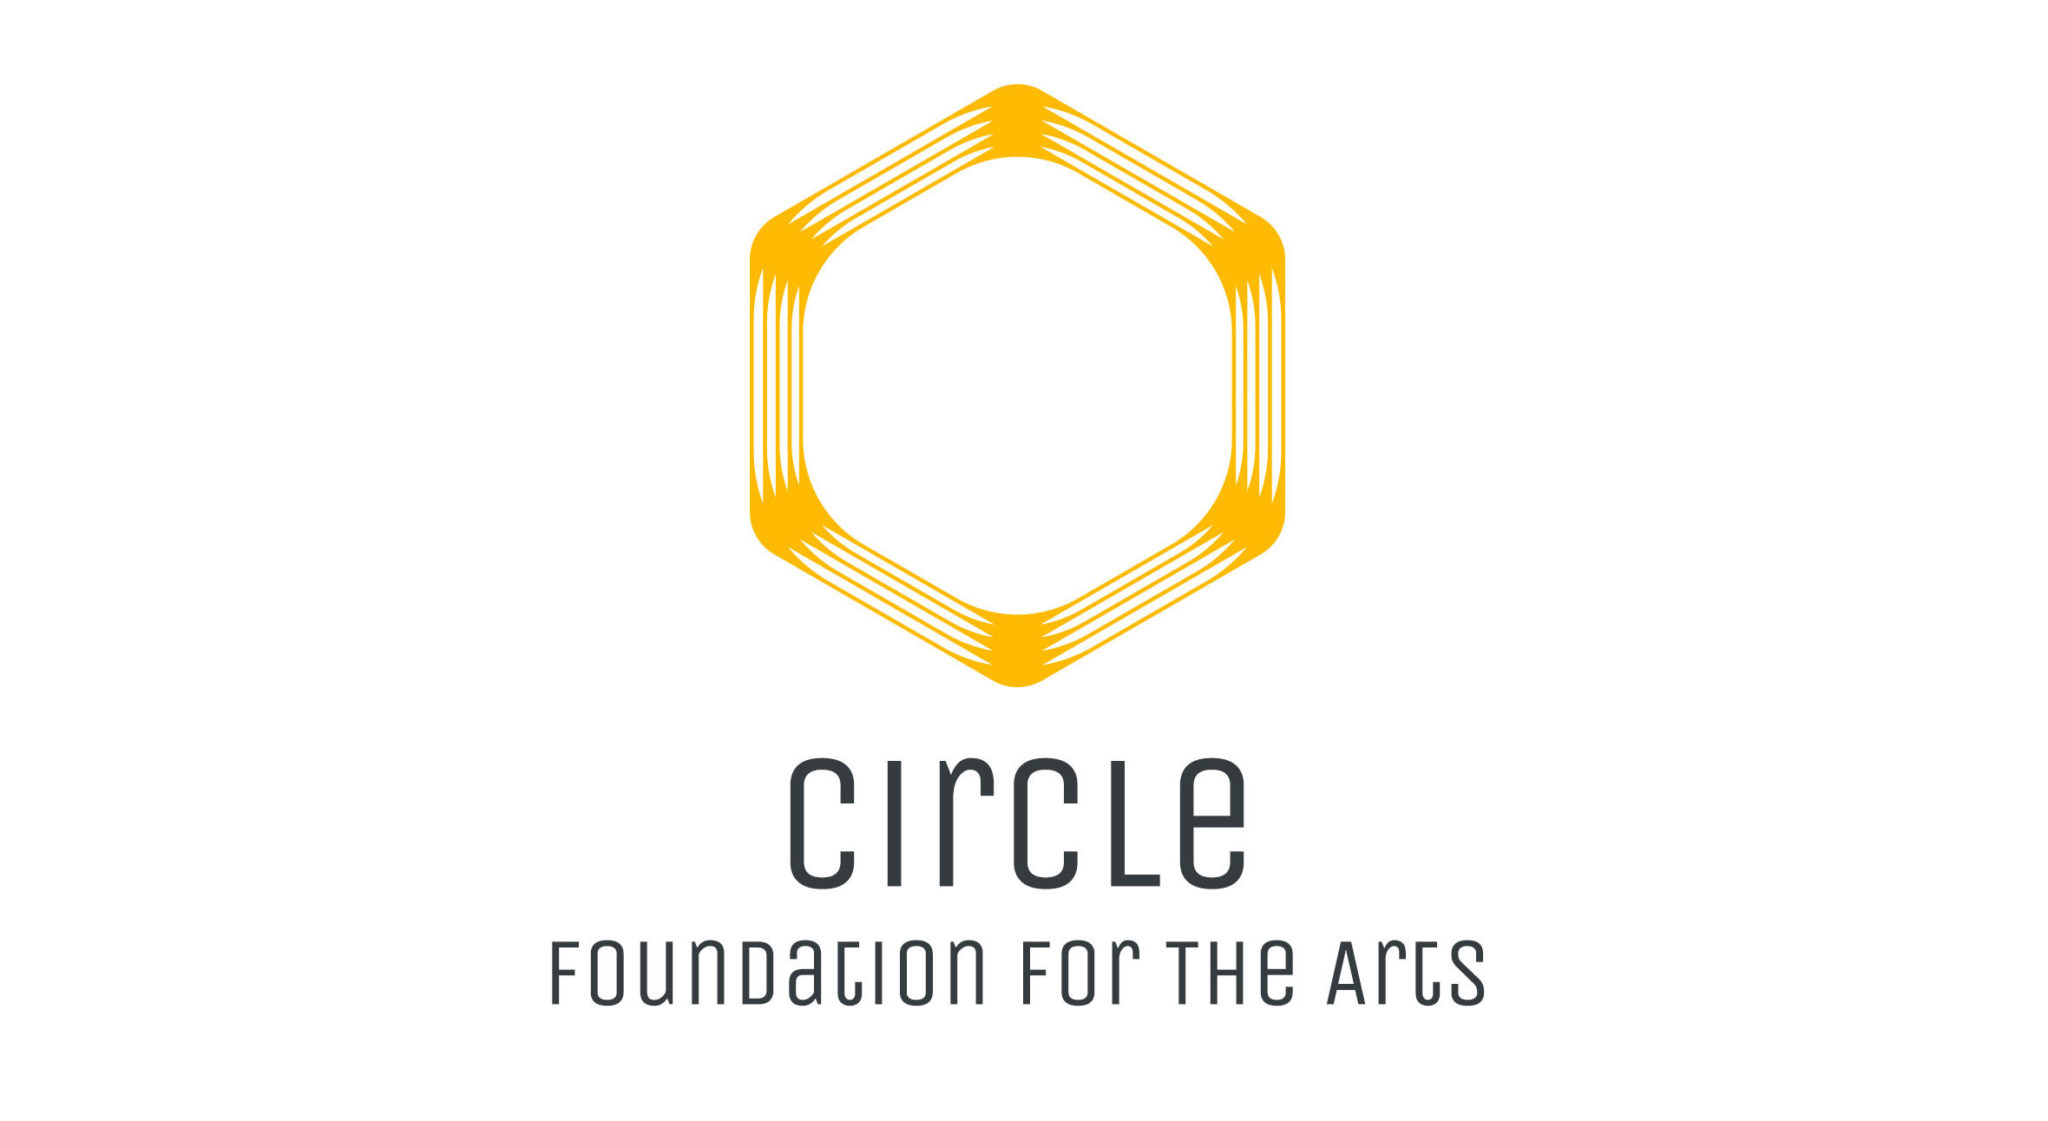 Circle Foundation for the Art